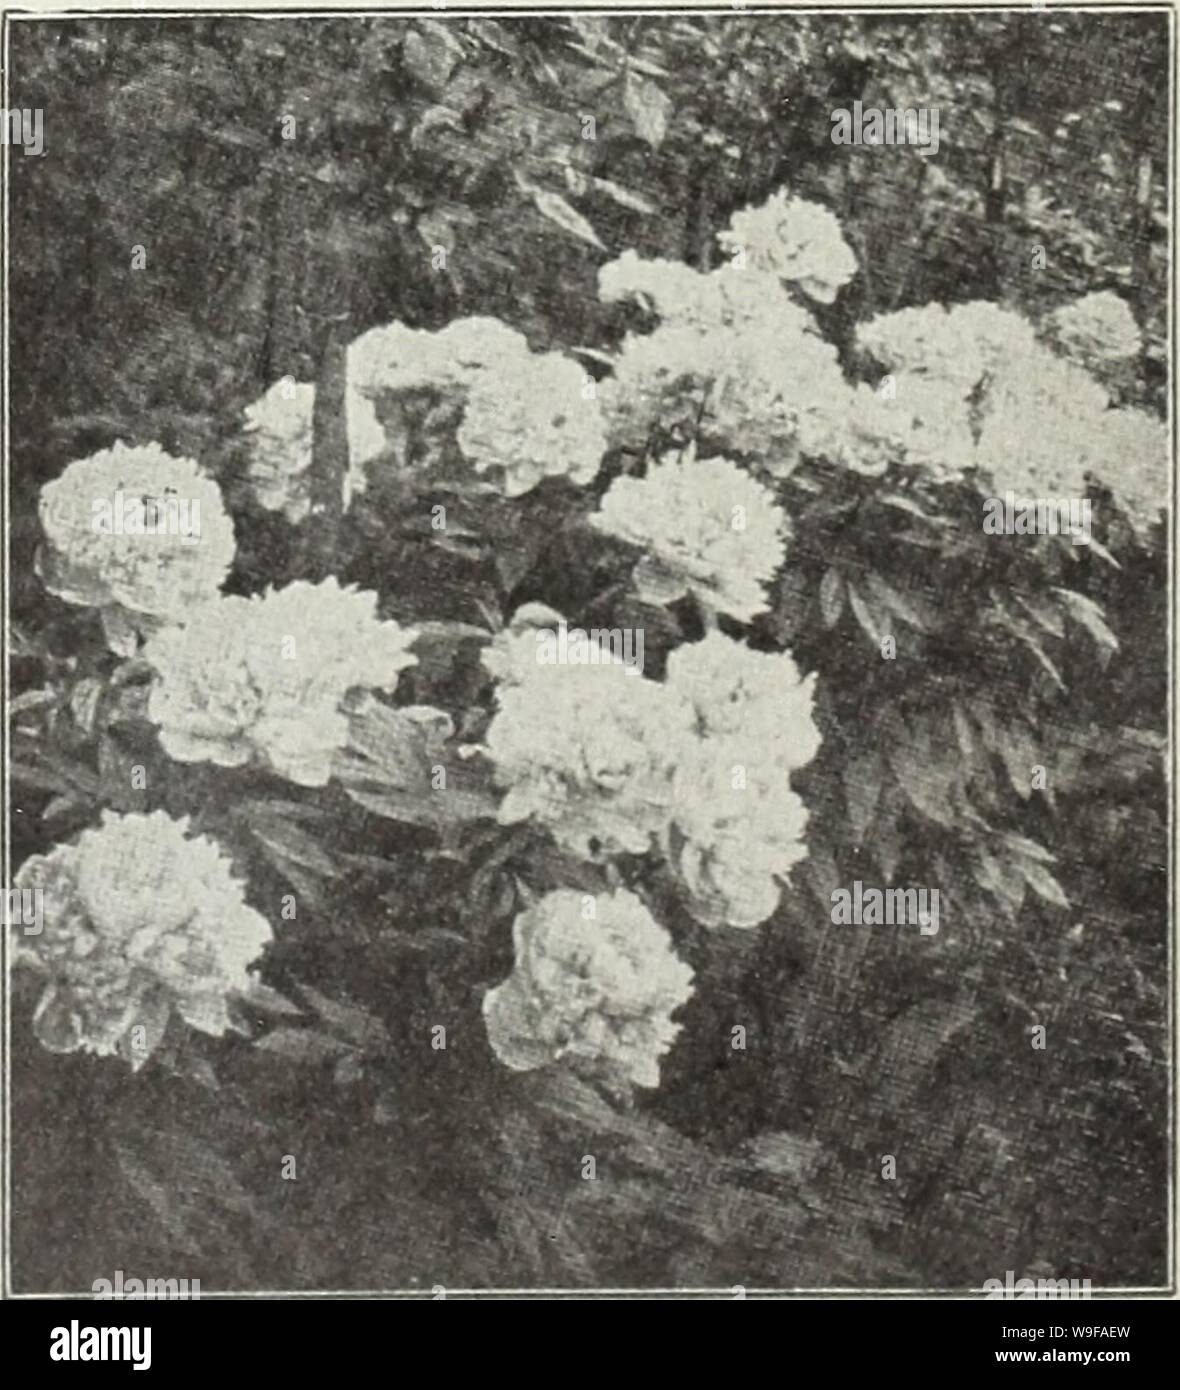 Archive image from page 26 of Currie's autumn 1929 54th year. Currie's autumn 1929 54th year bulbs and plants  curriesautumn19219curr Year: 1929 ( Viola (Tufted Pansy) PEONIES The most popular of all hardy herbaceous plants, admired by everybody, and so easily grown that no one with even the most Hmited garden space should be without one or rnore. They are perfectly hardy, thriving in almost any soil either in the open or light shade. Well enriched loam, however, suits them best, carefully avoiding an over abundance of fresh manure close to the roots. Beware of too deep planting. Make the hole Stock Photo